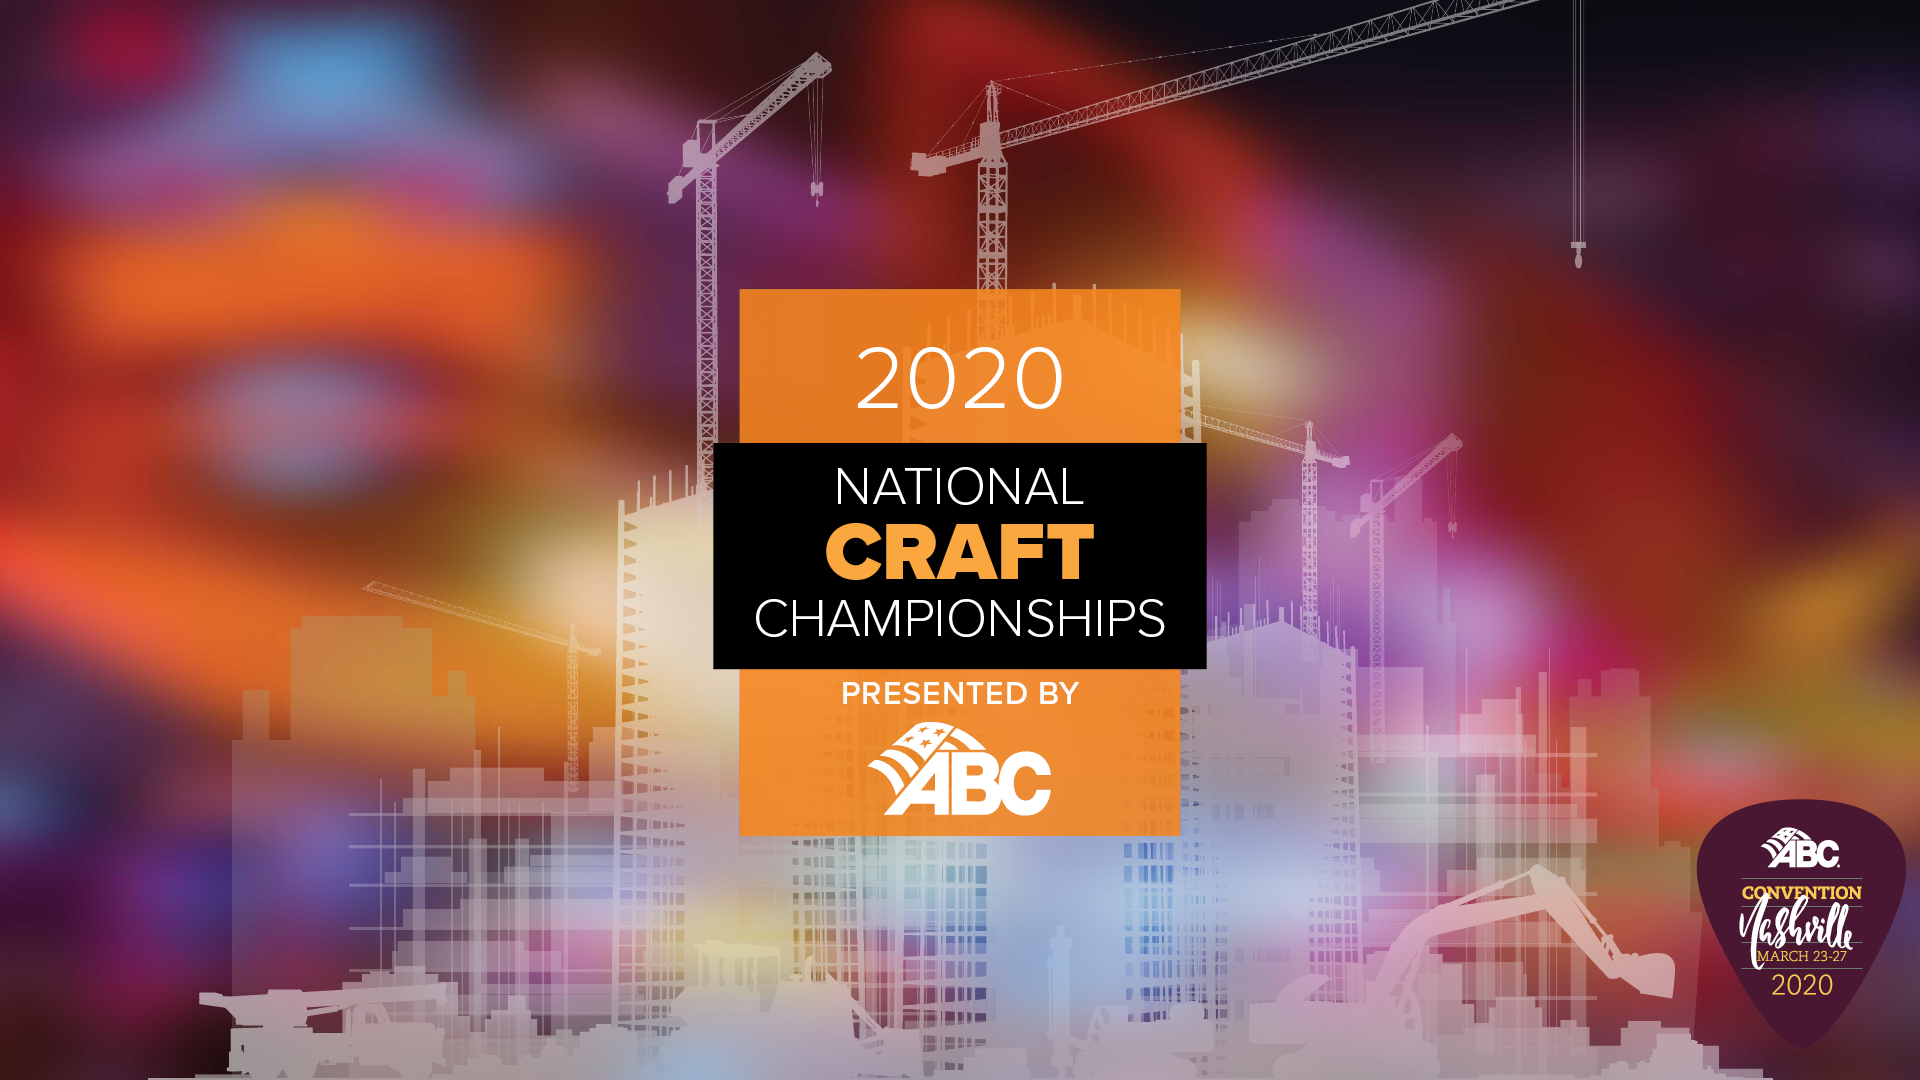 2020 National Craft Championships